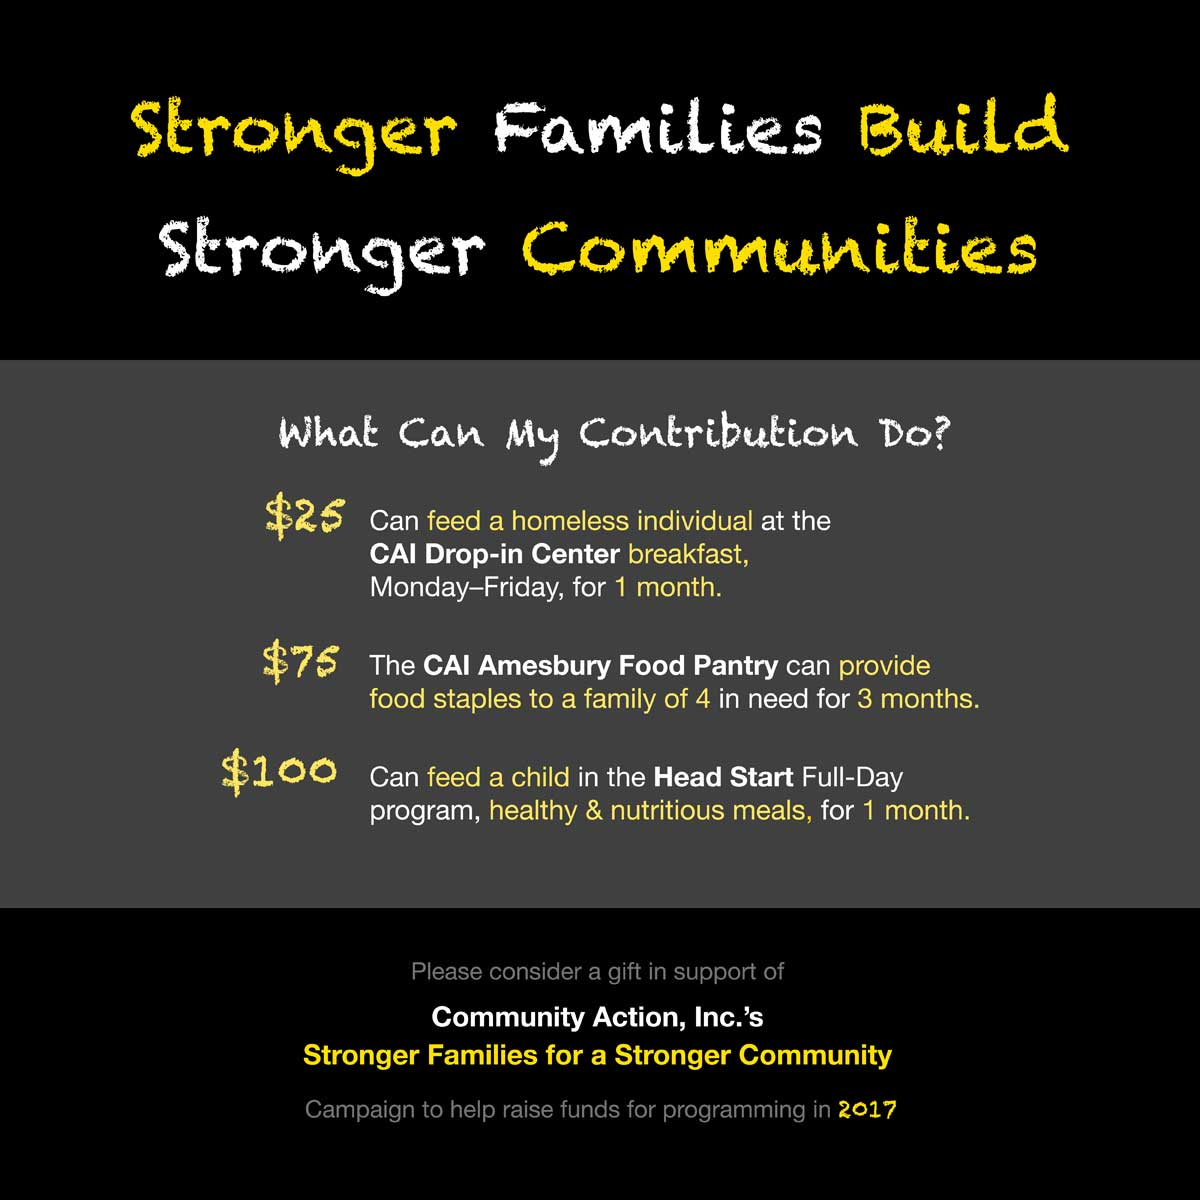 2016 Stronger Families for a Stronger Community Campaign